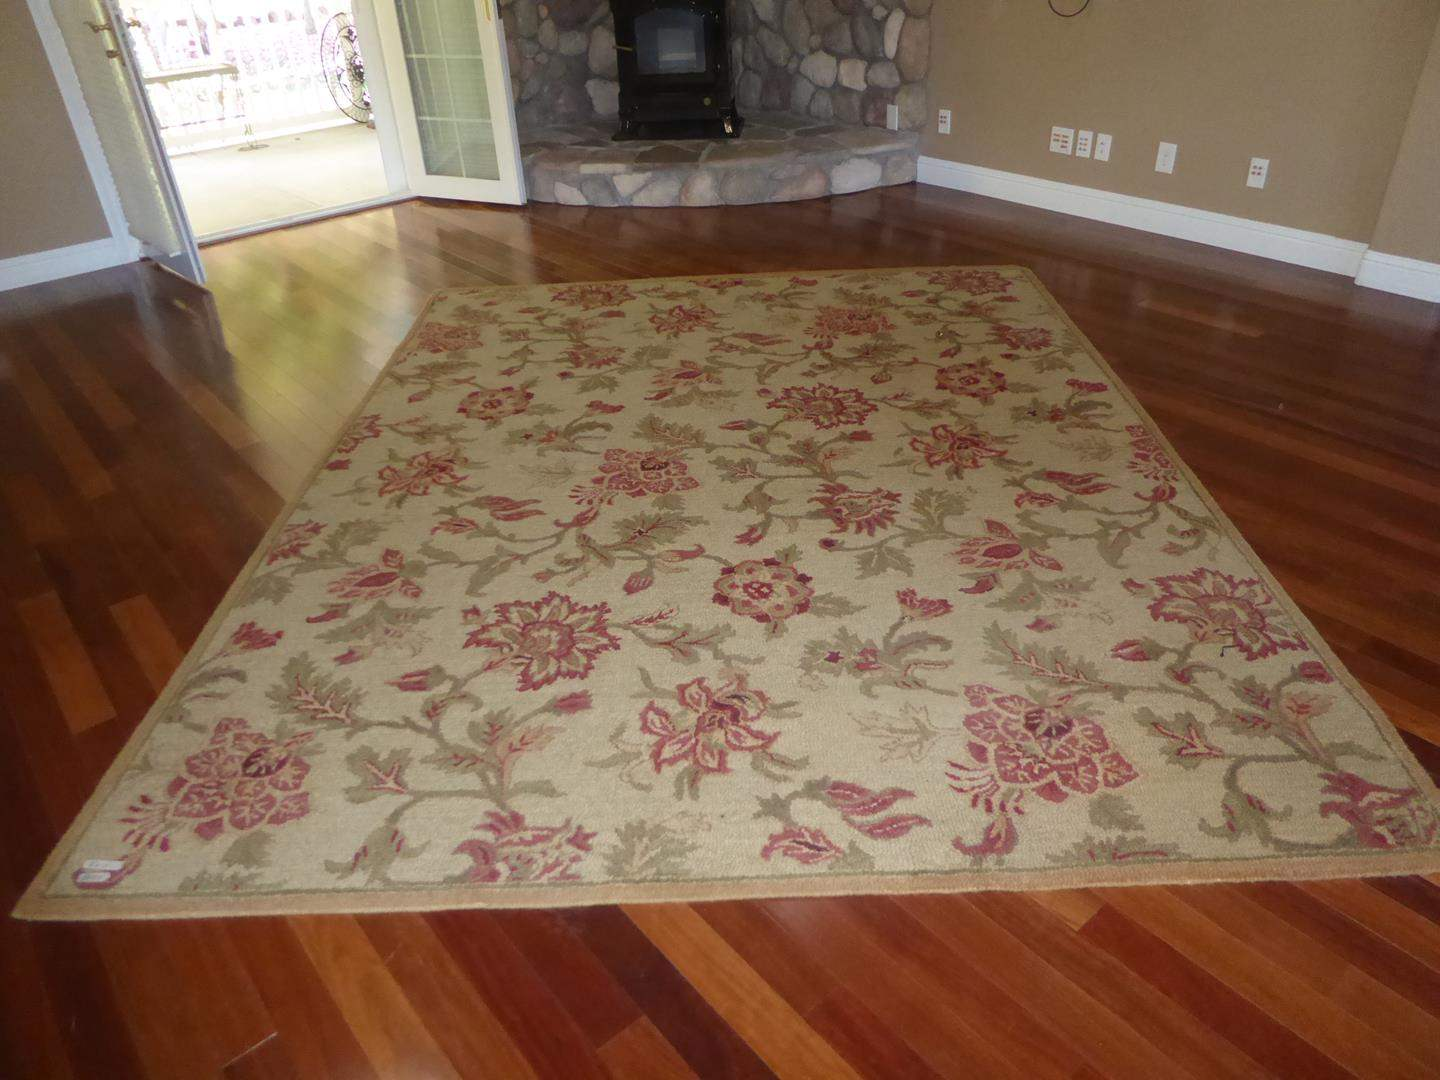 Lot # 154 - 8' x 10' Handtufted Wool Area Rug (main image)